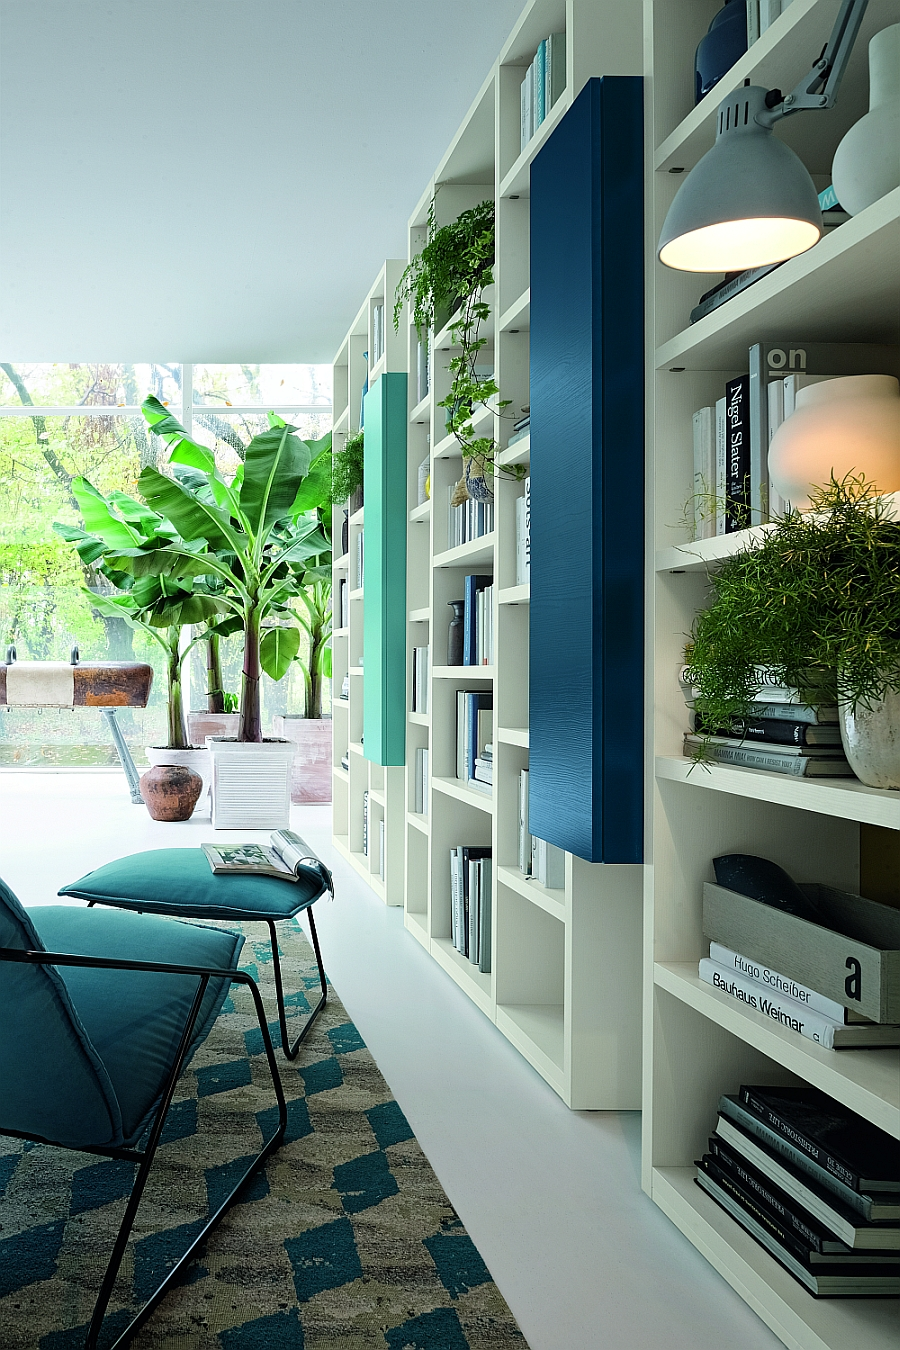 Natural greenery adds to the vibrant style of the wall unit system